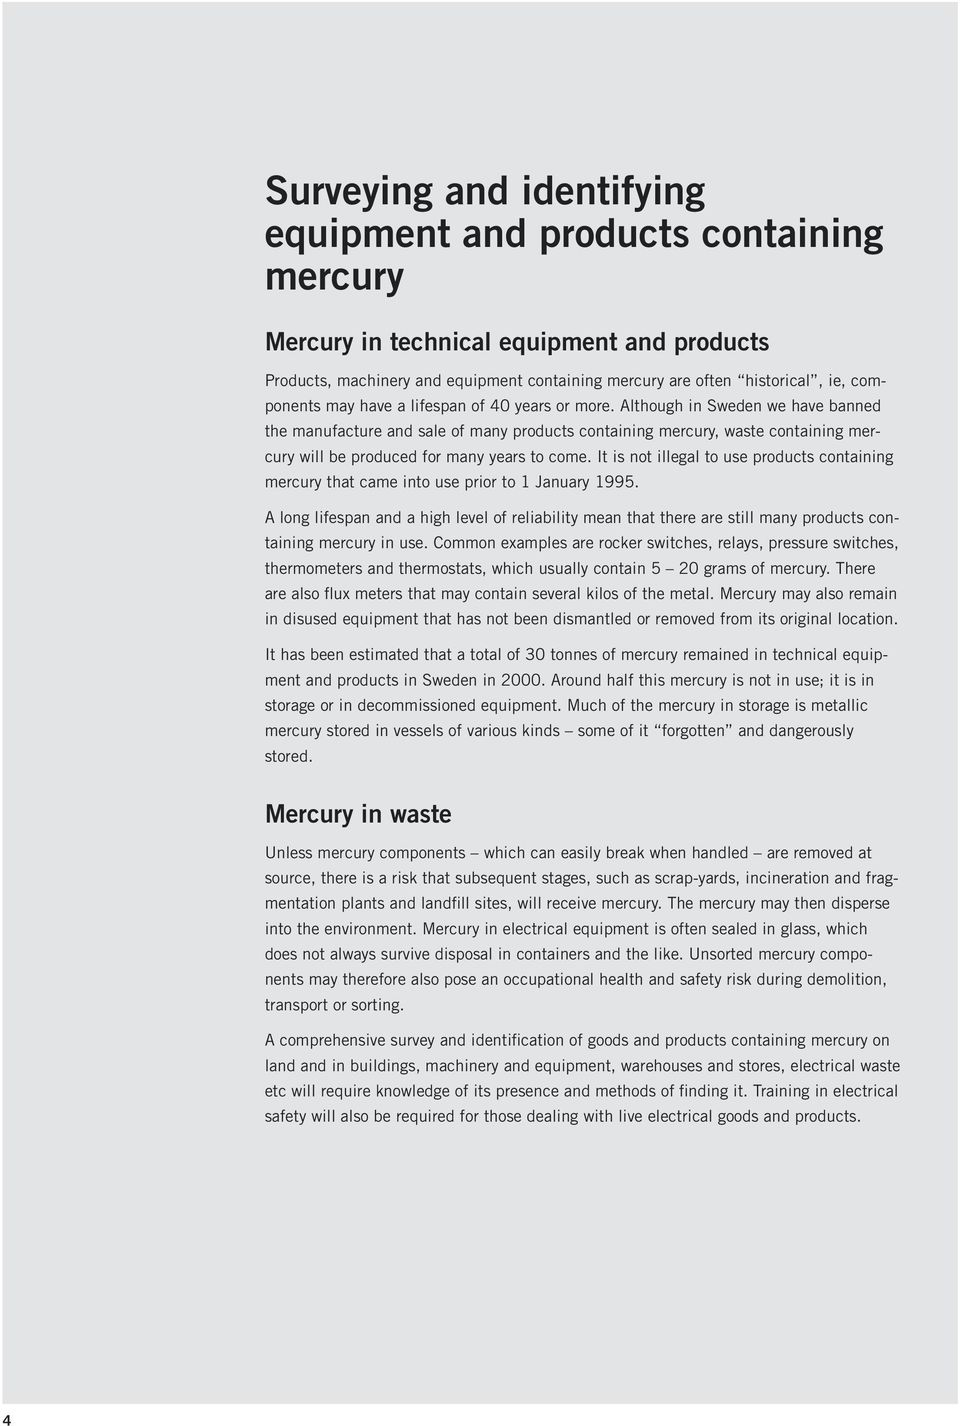 Although in Sweden we have banned the manufacture and sale of many products containing mercury, waste containing mercury will be produced for many years to come.